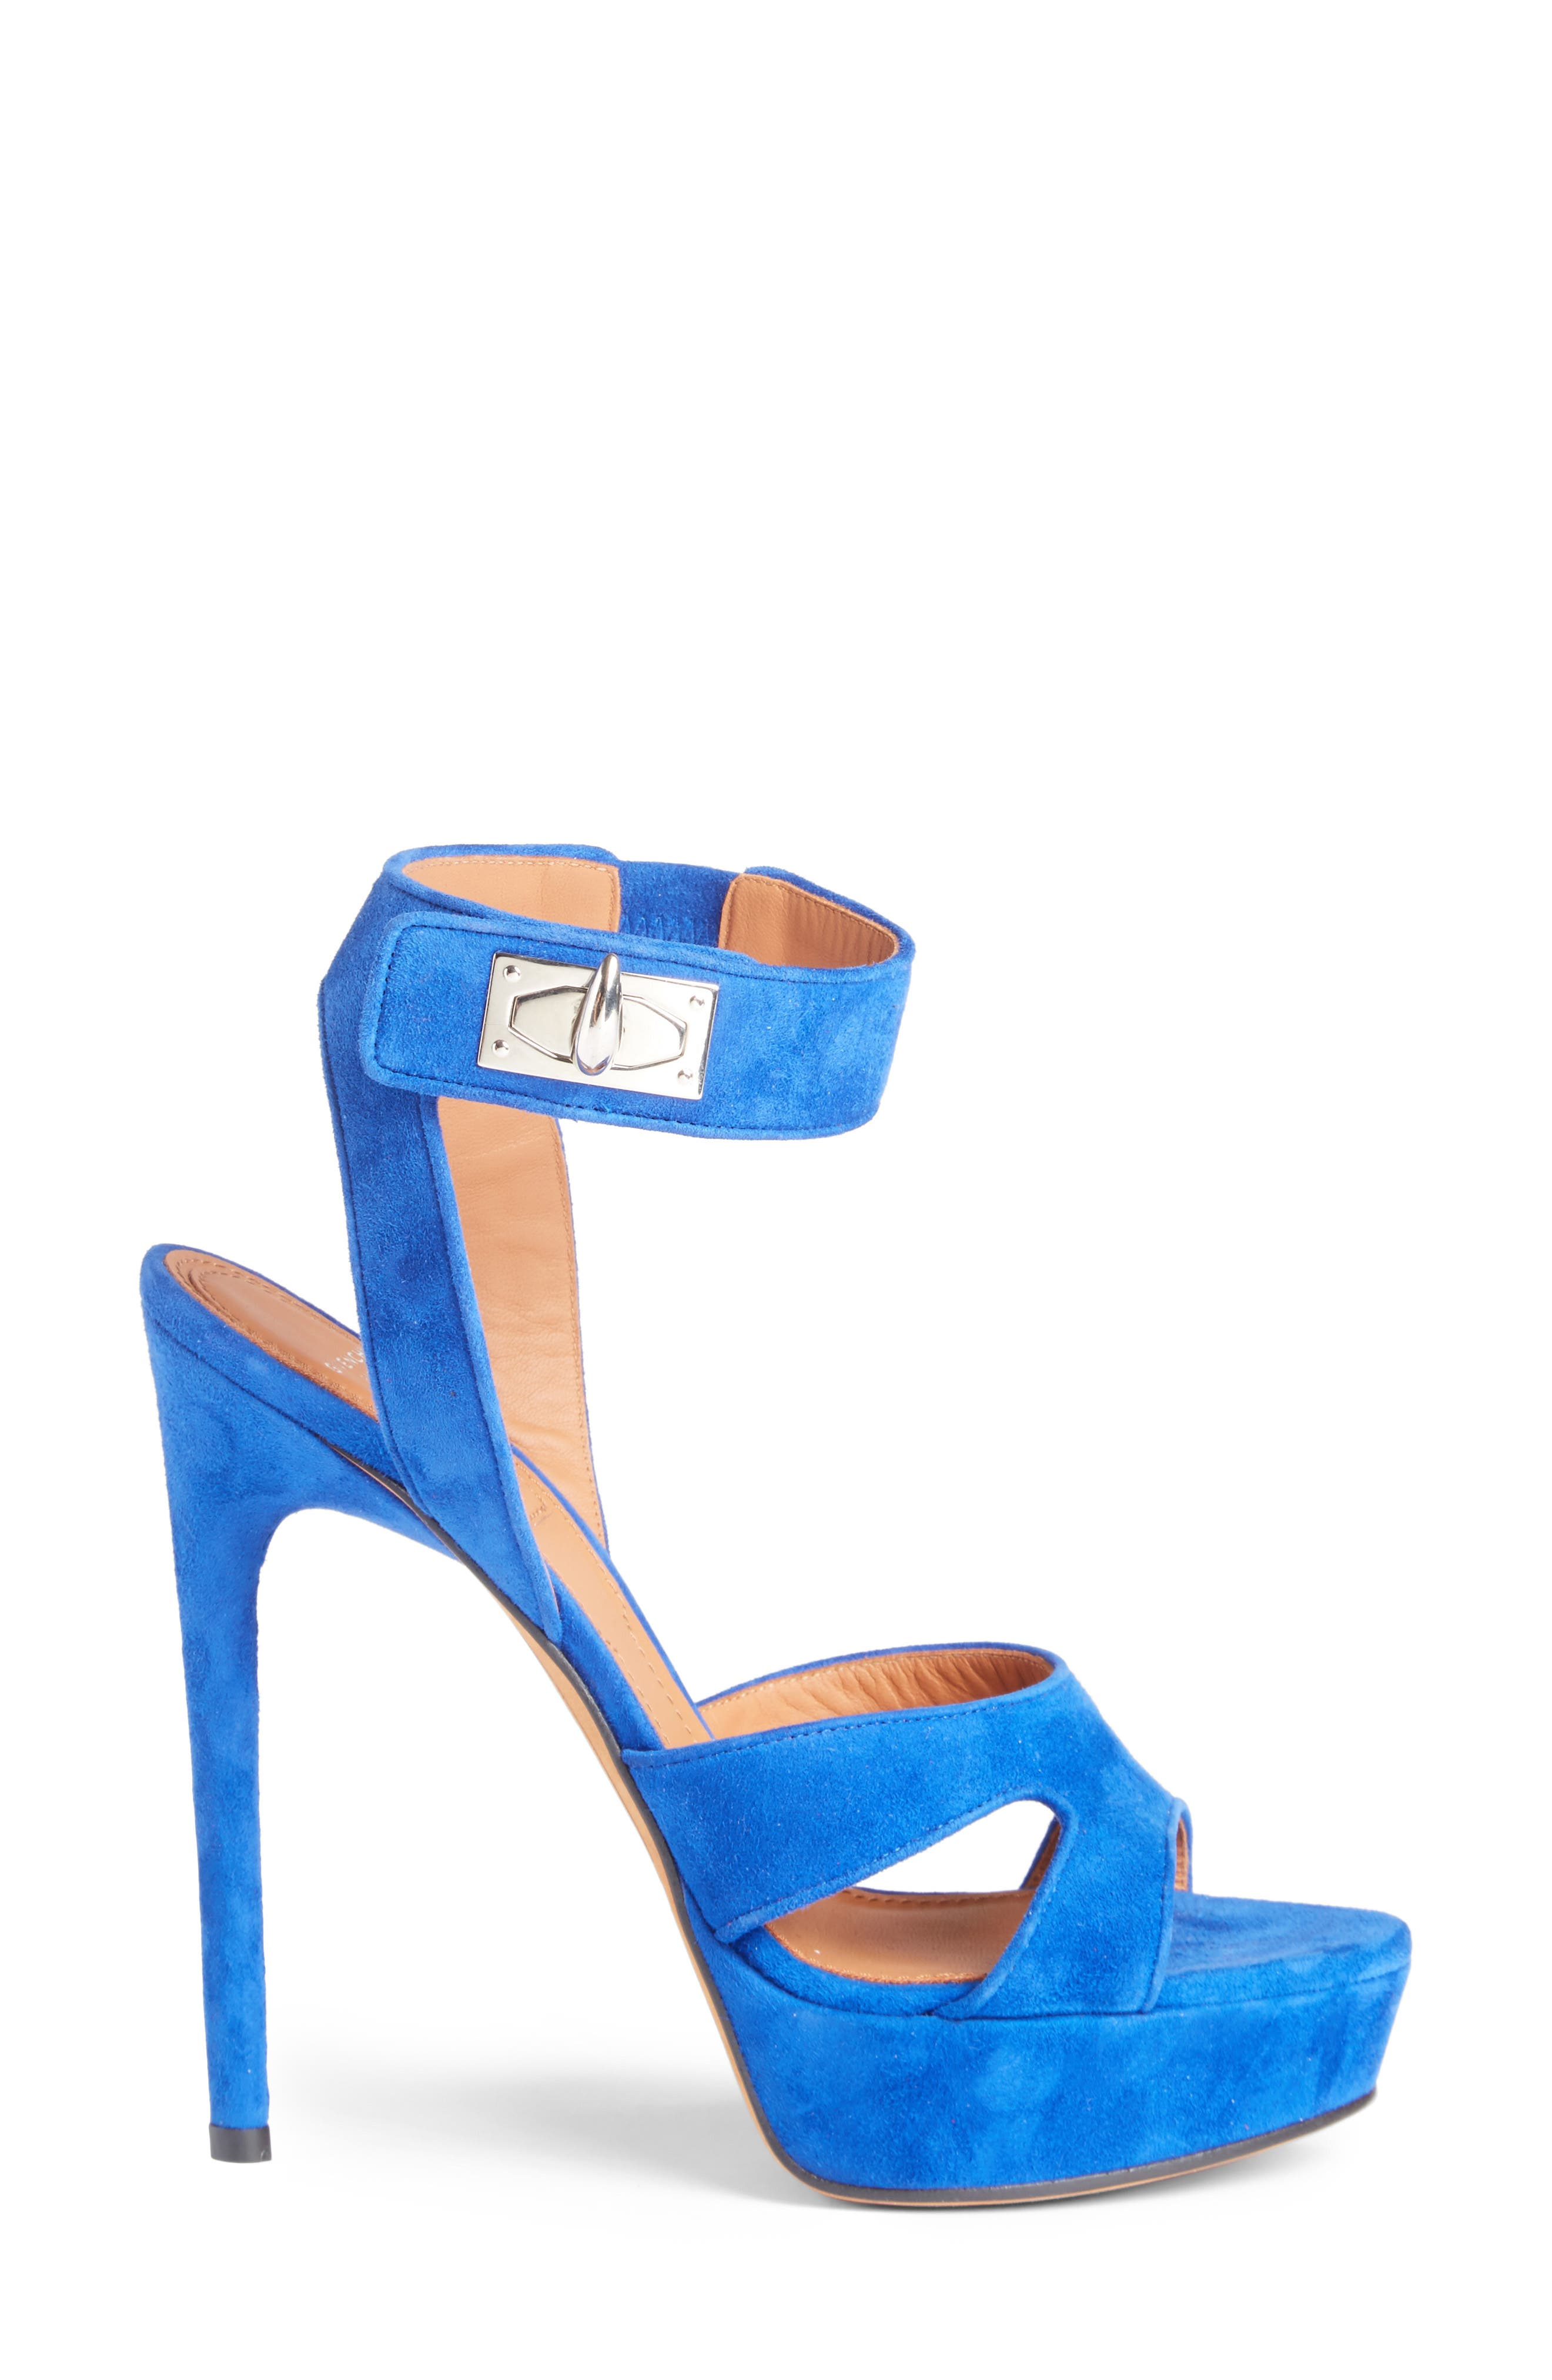 Shark's Tooth Sandal,                             Alternate thumbnail 4, color,                             Electric Blue